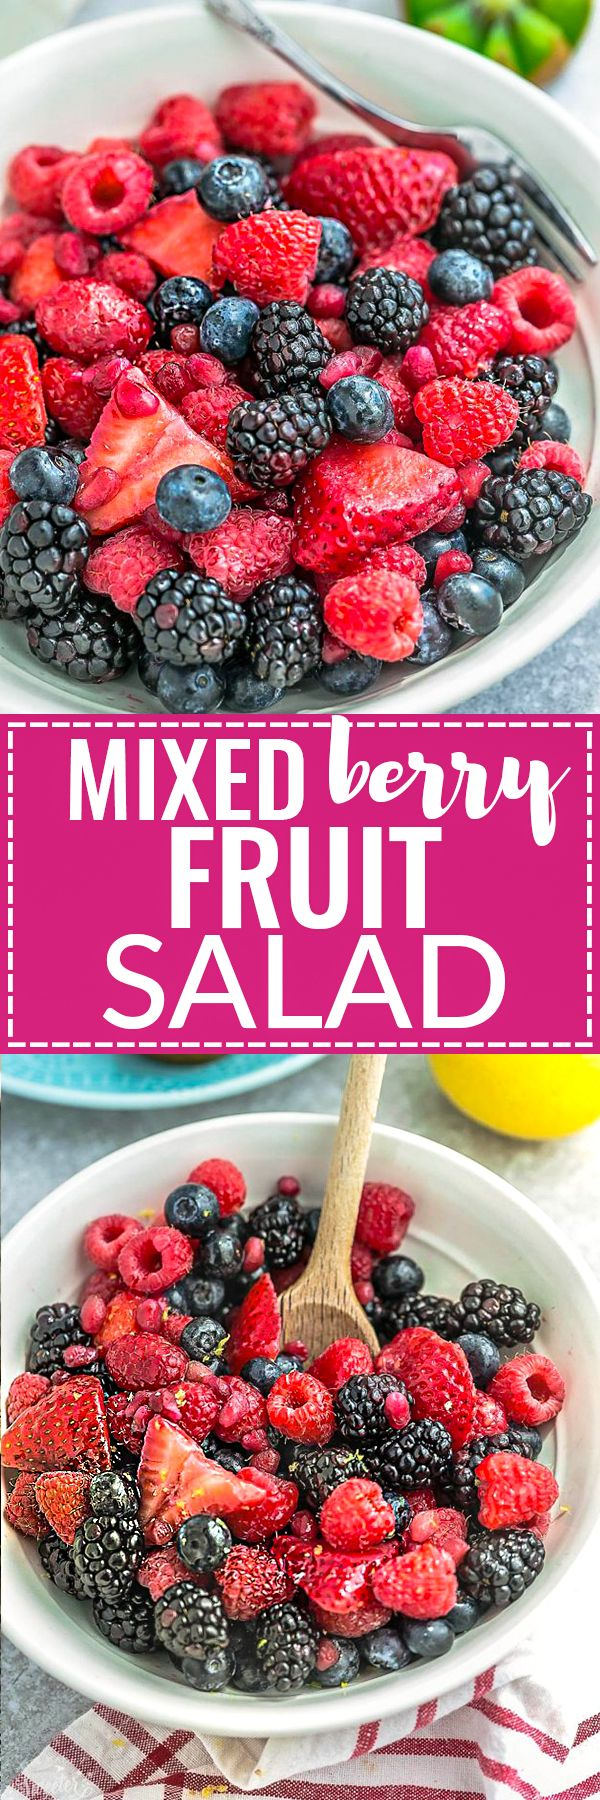 Mixed Berry Fruit Salad – a healthy snack or dessert with a refreshing lemon and honey glaze. Best of all, so easy to customize with your favorite fresh fruit. An easy red, white and blue dish that's perfect to bring along to Memorial Day, Fourth of July potluck, summer barbecue, party or picnic. A delicious snack for kids and adults!